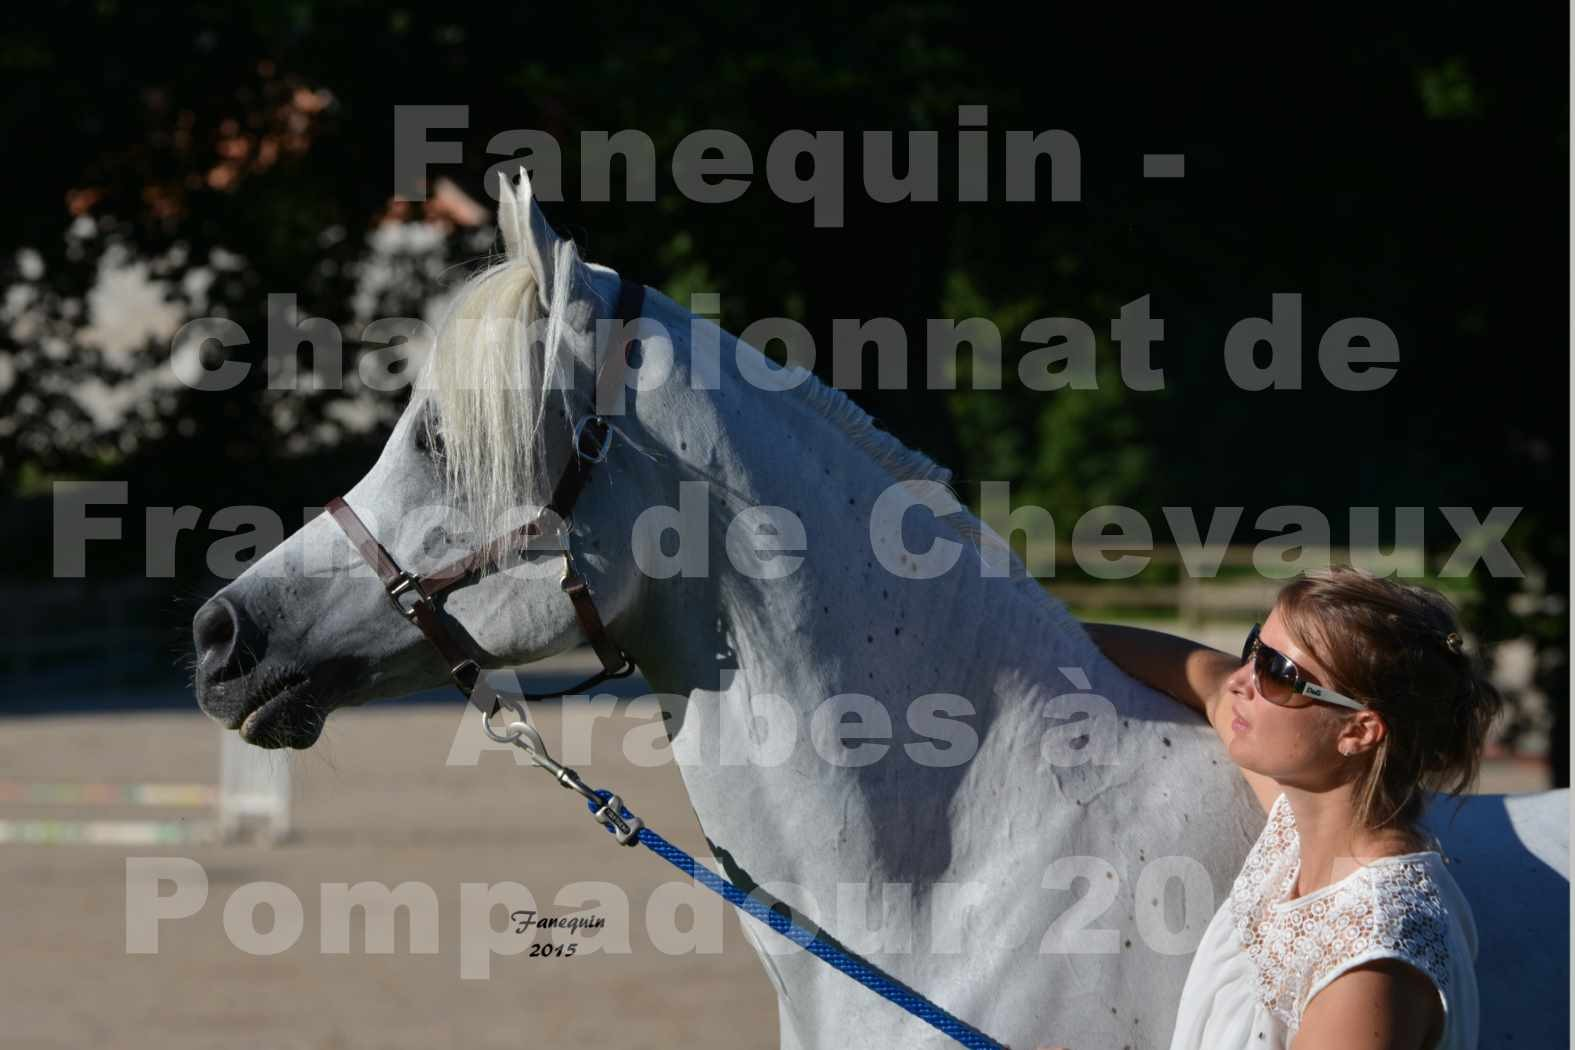 Championnat de FRANCE du cheval ARABE à POMPADOUR 2015 - Classes PROFESSIONNELS - Portraits - HAADJA - 2